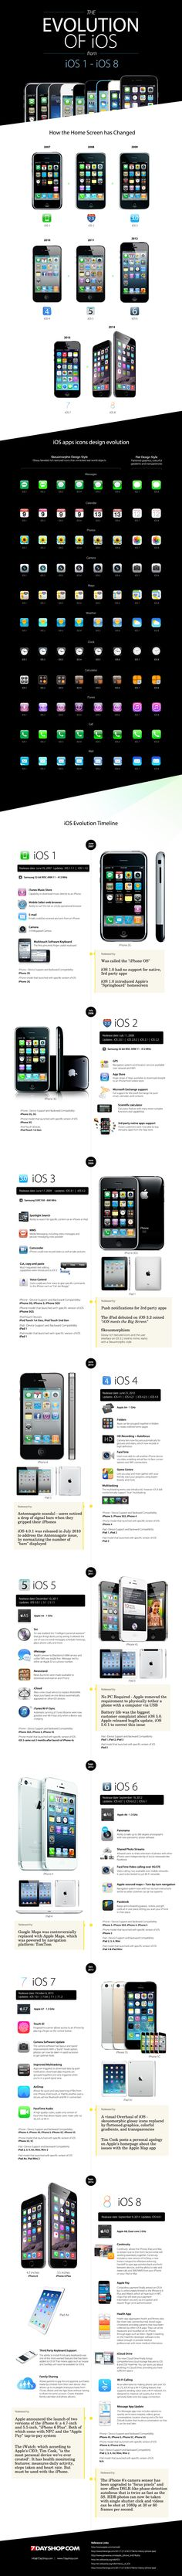 The Evolution of iOS: From iOS 1 to iOS 8 #Infographic